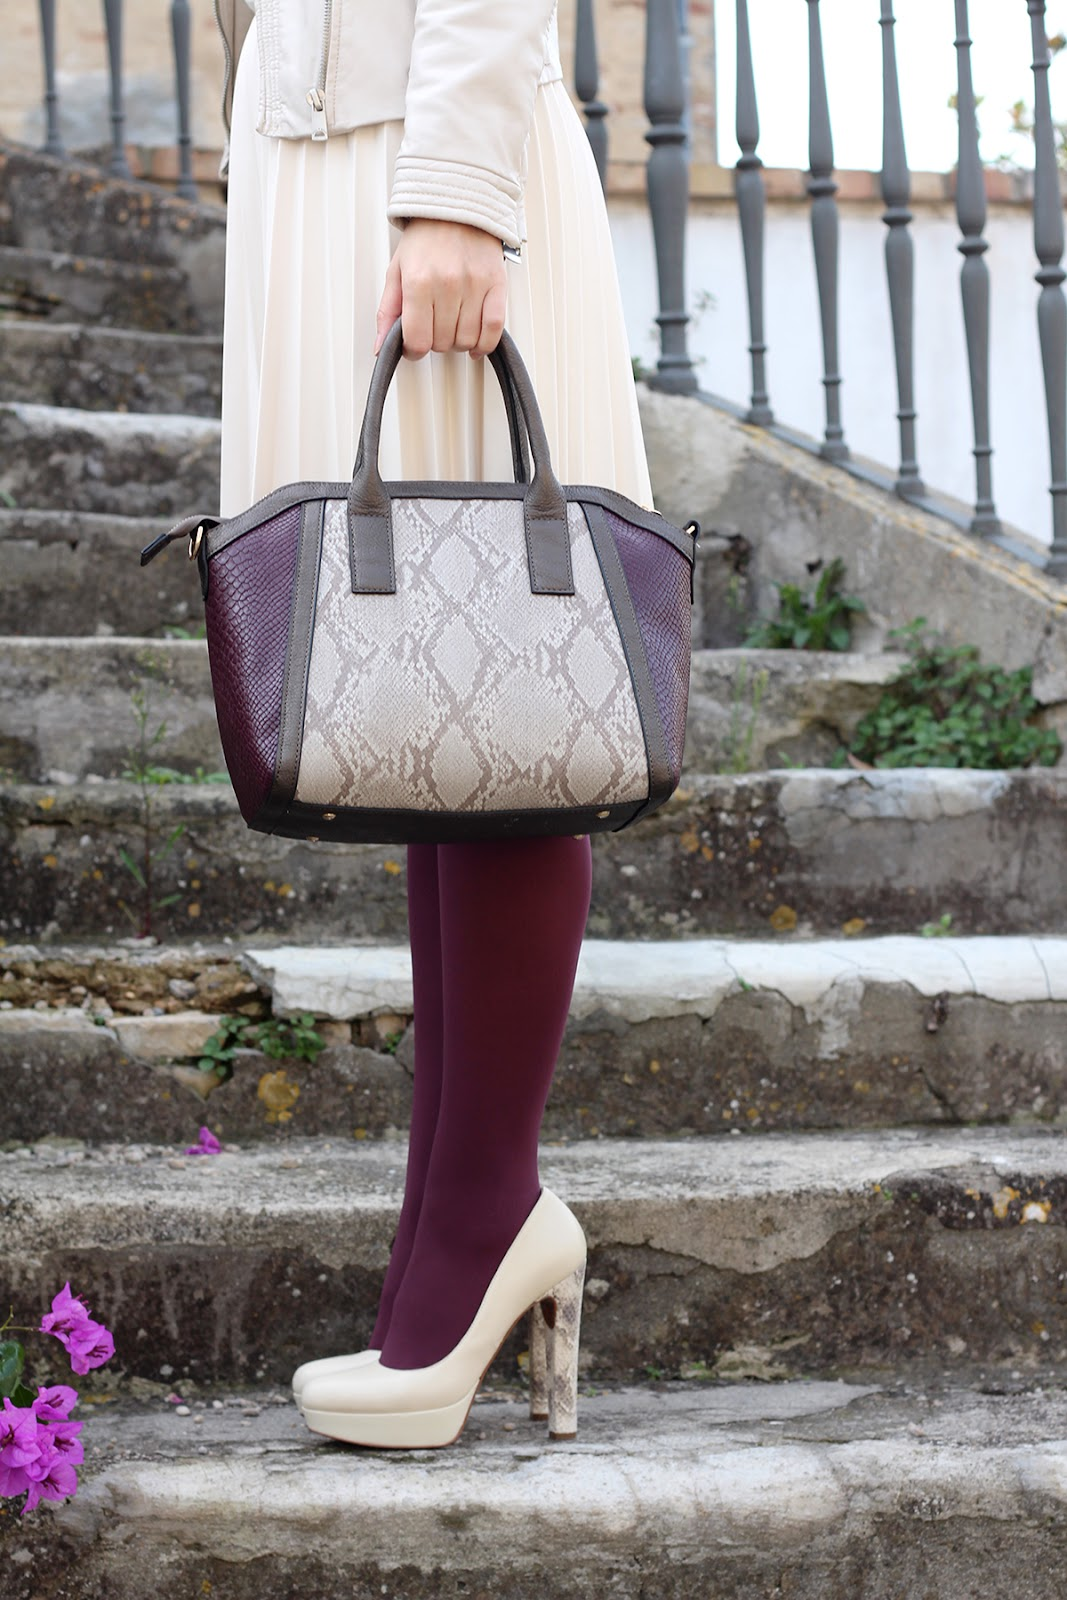 bijou brigitte bag animalier burgundy cream python pittarello heels scarpe shoes